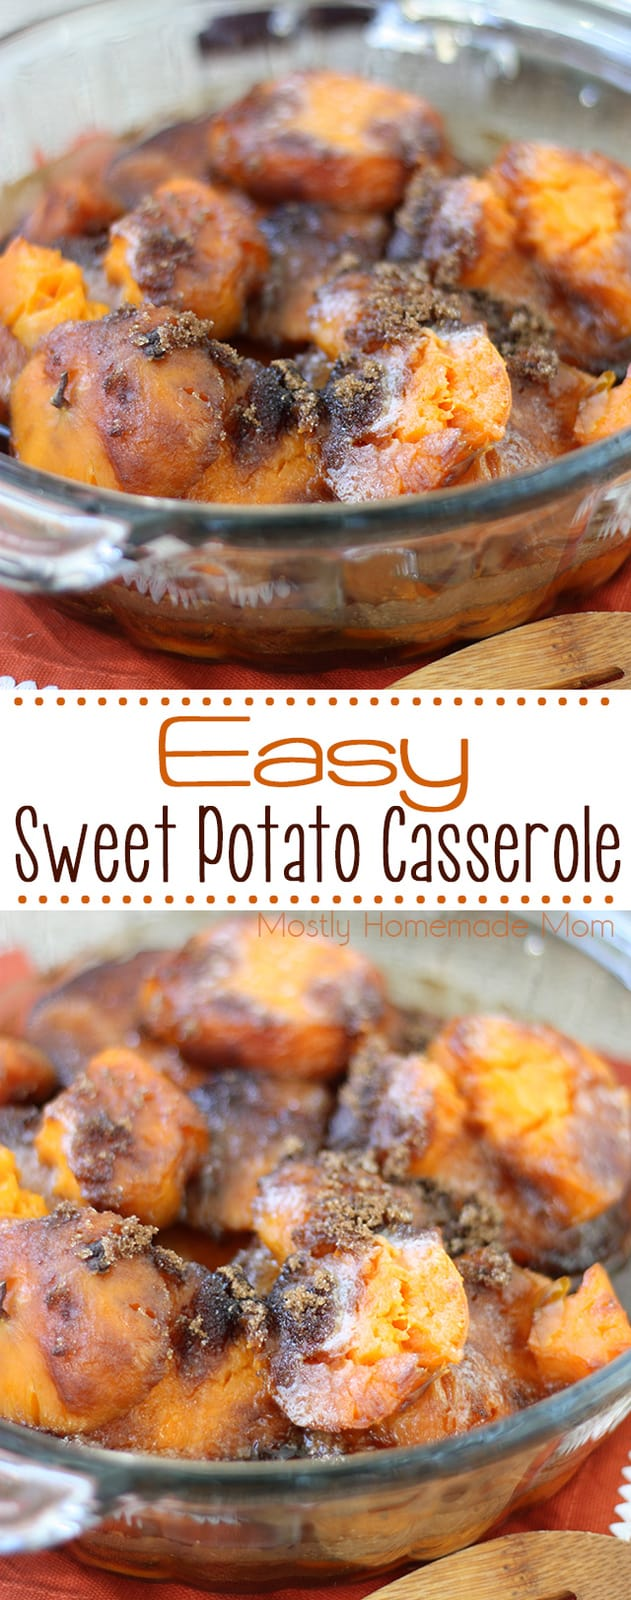 EASY Sweet Potato Casserole Recipe - been in my family for generations! Sliced sweet potatoes topped with butter and brown sugar - it's not the holidays without this side dish! #sweetpotatocasserole #thanksgiving #sidedish